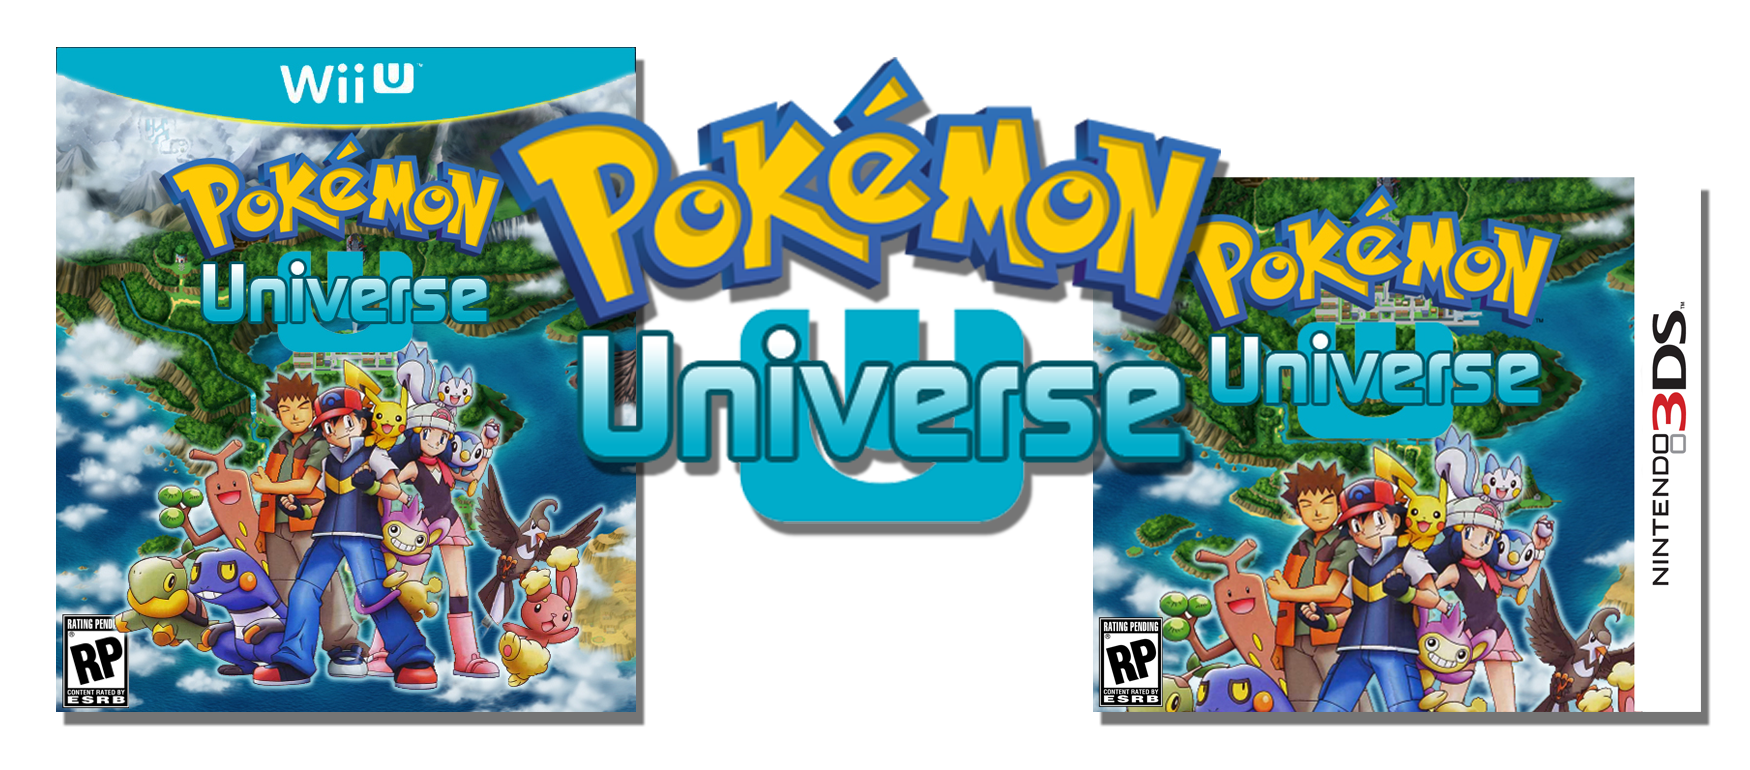 pokemon universe confirmed for wii u and 3ds – what's your tag?